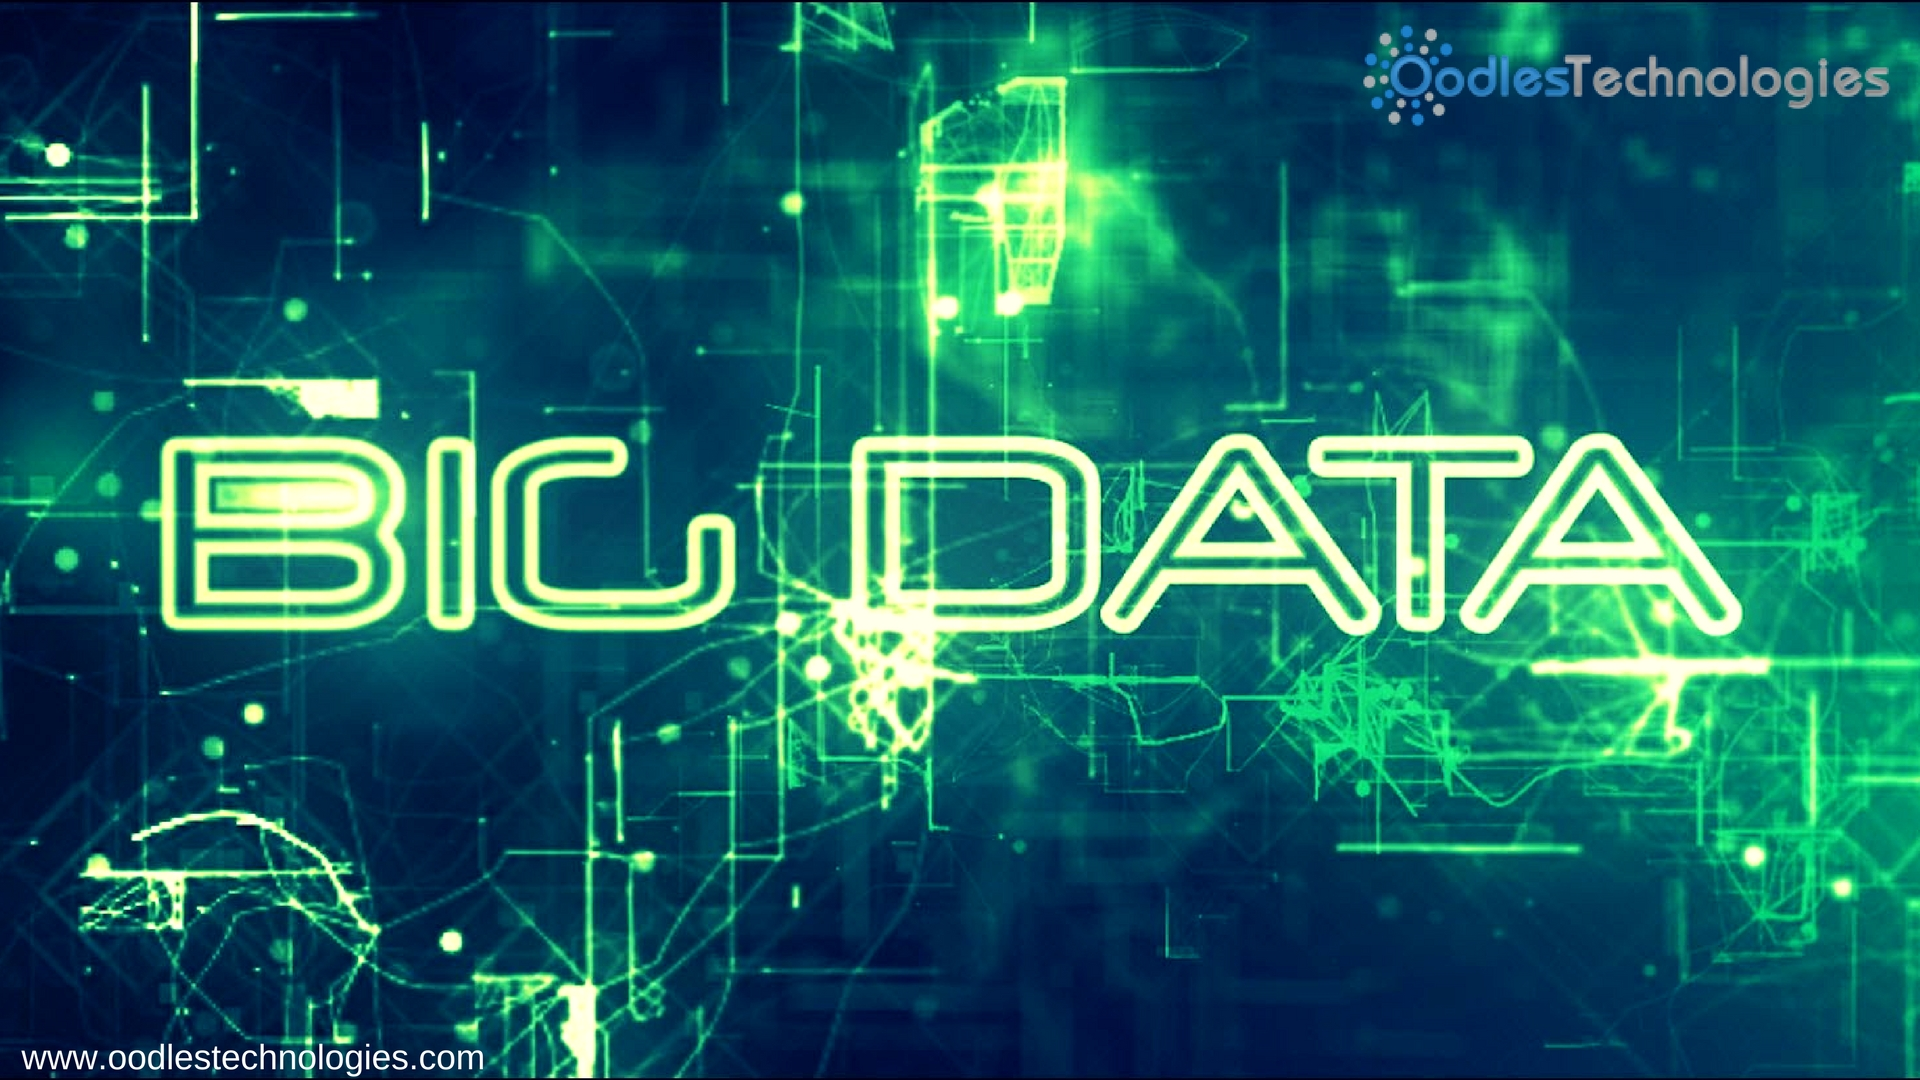 5 Big Data Technologies You Must Know